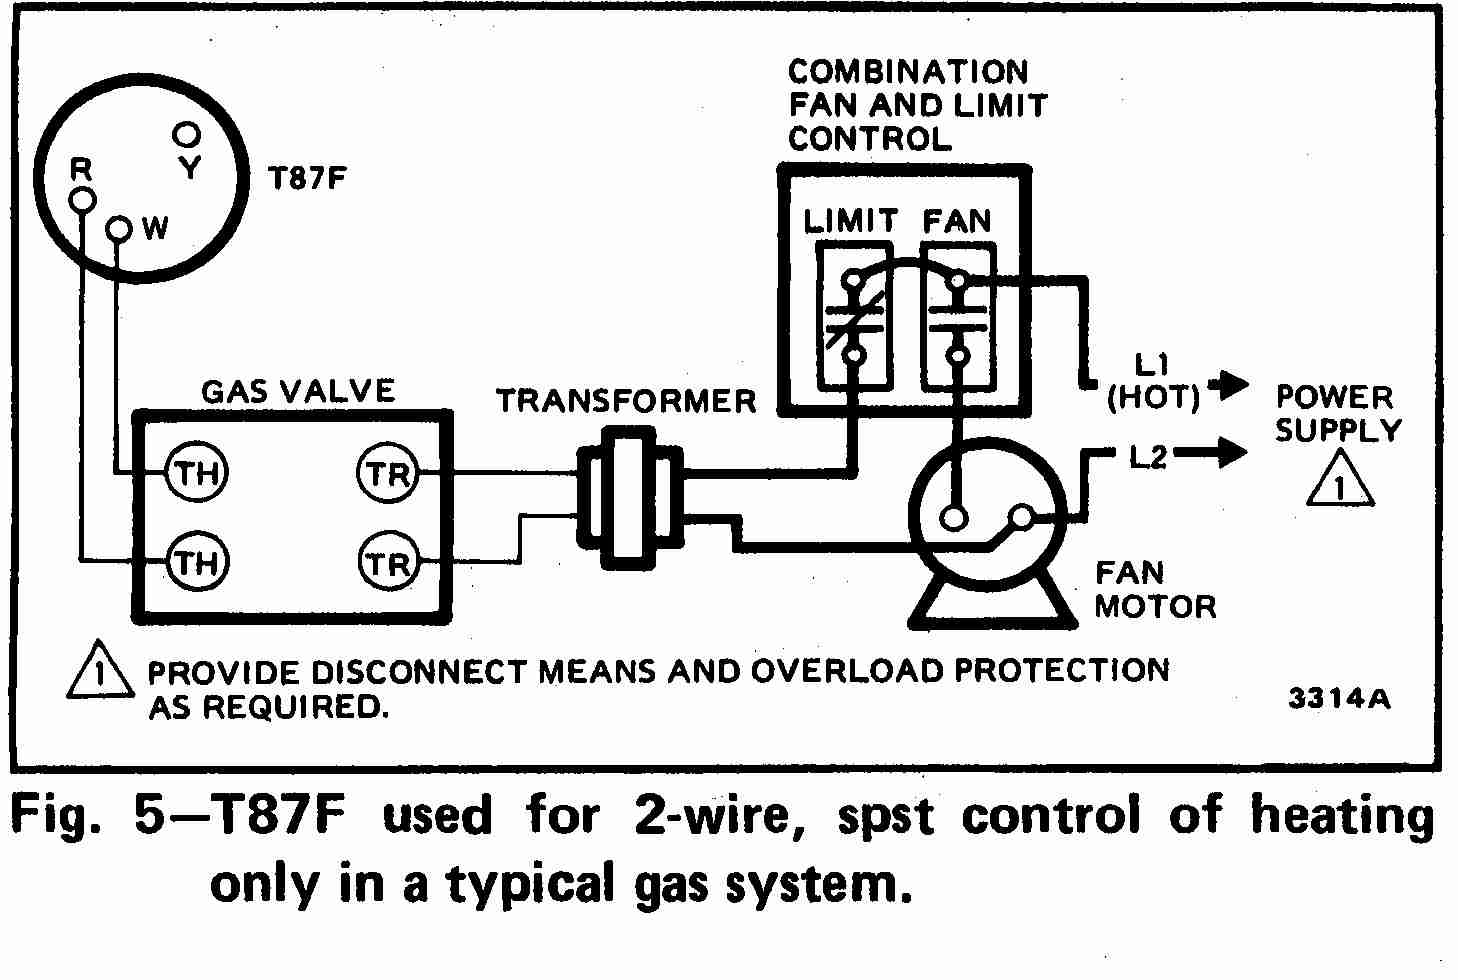 lennox wiring diagram thermostat supply chain management workflow gas hot water heater library room diagrams for hvac systems furnace heat